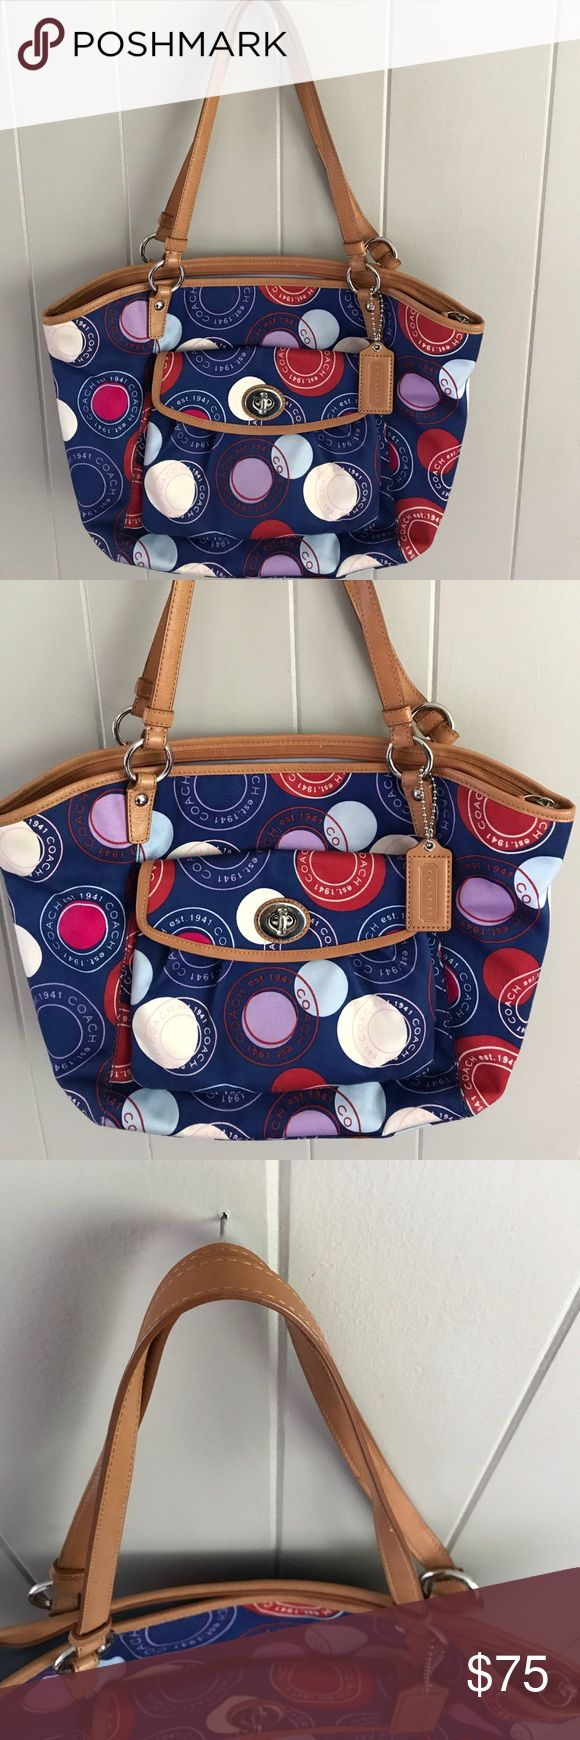 Coach multi color polka dot Tote Coachmulti color polka dot Tote/ shoulder bag. Good preowned condition with some pen marks on the lining. Leather trim is still in nice condition. Coach Bags Shoulder Bags